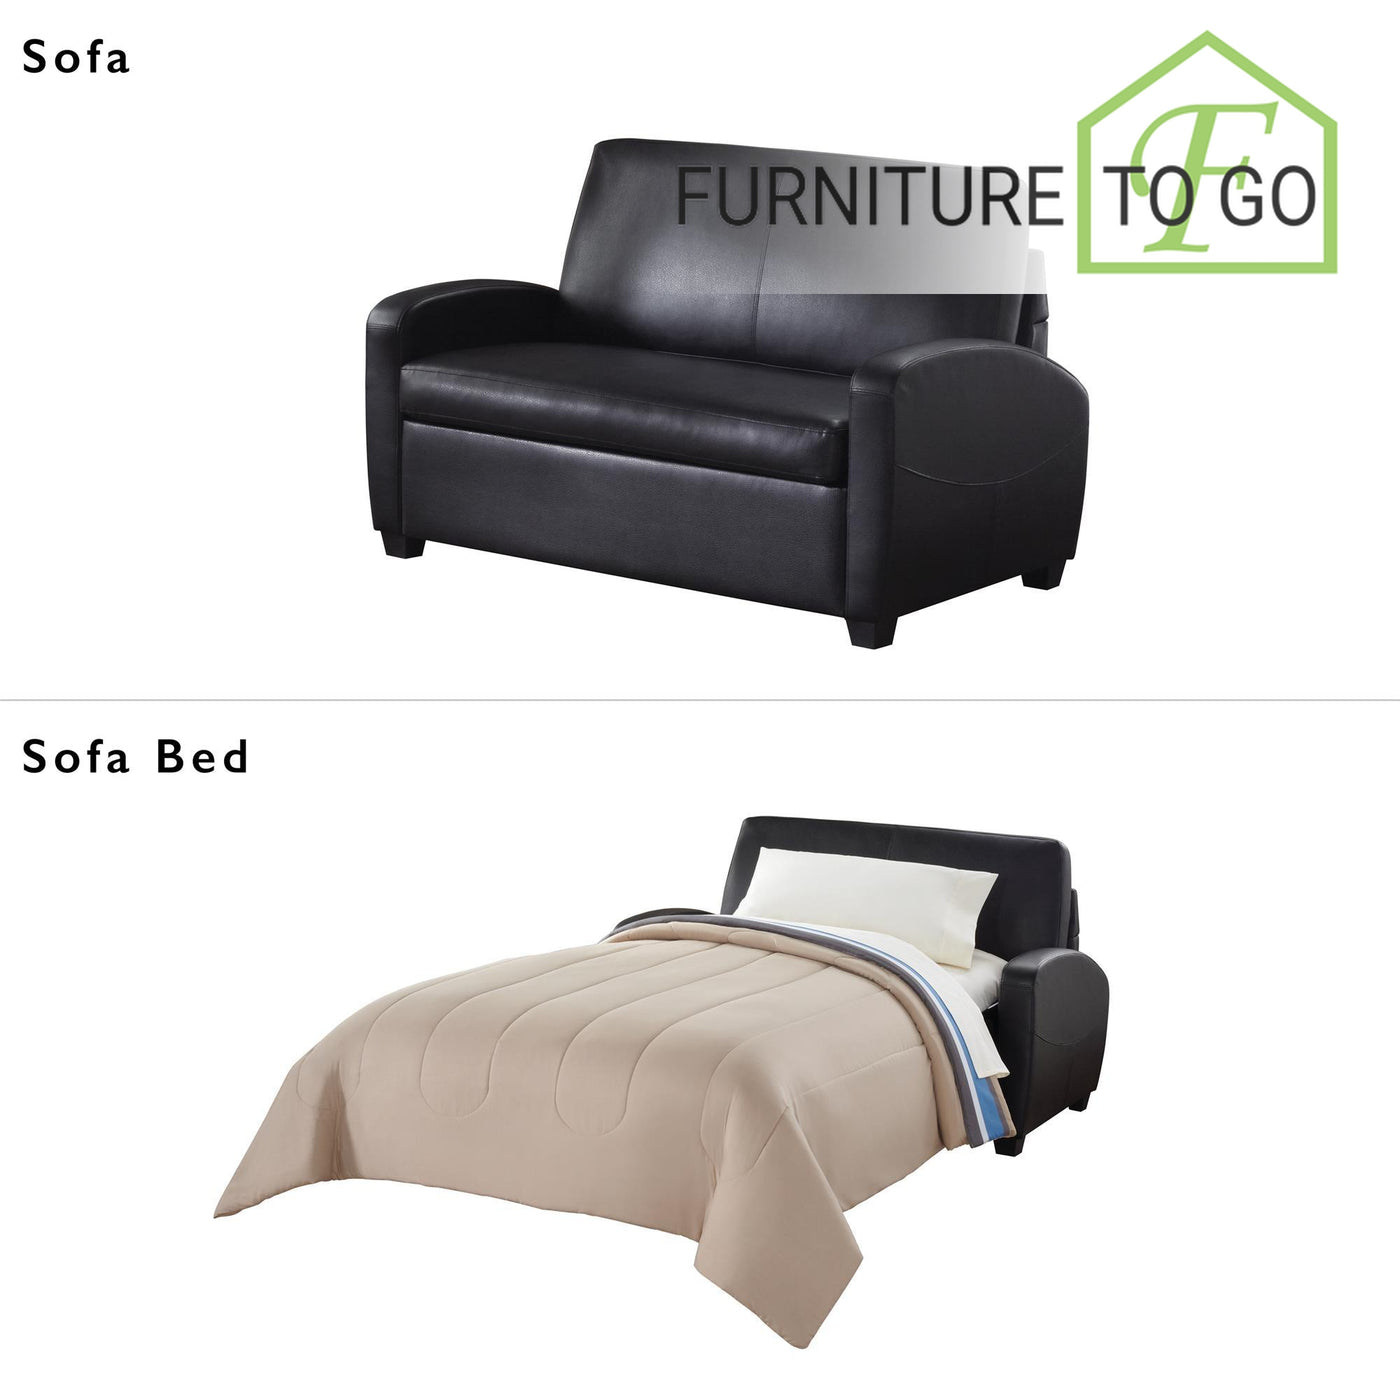 Ftg Furniture Stores Dallas Furniture To Go Furniture To Go Dallas